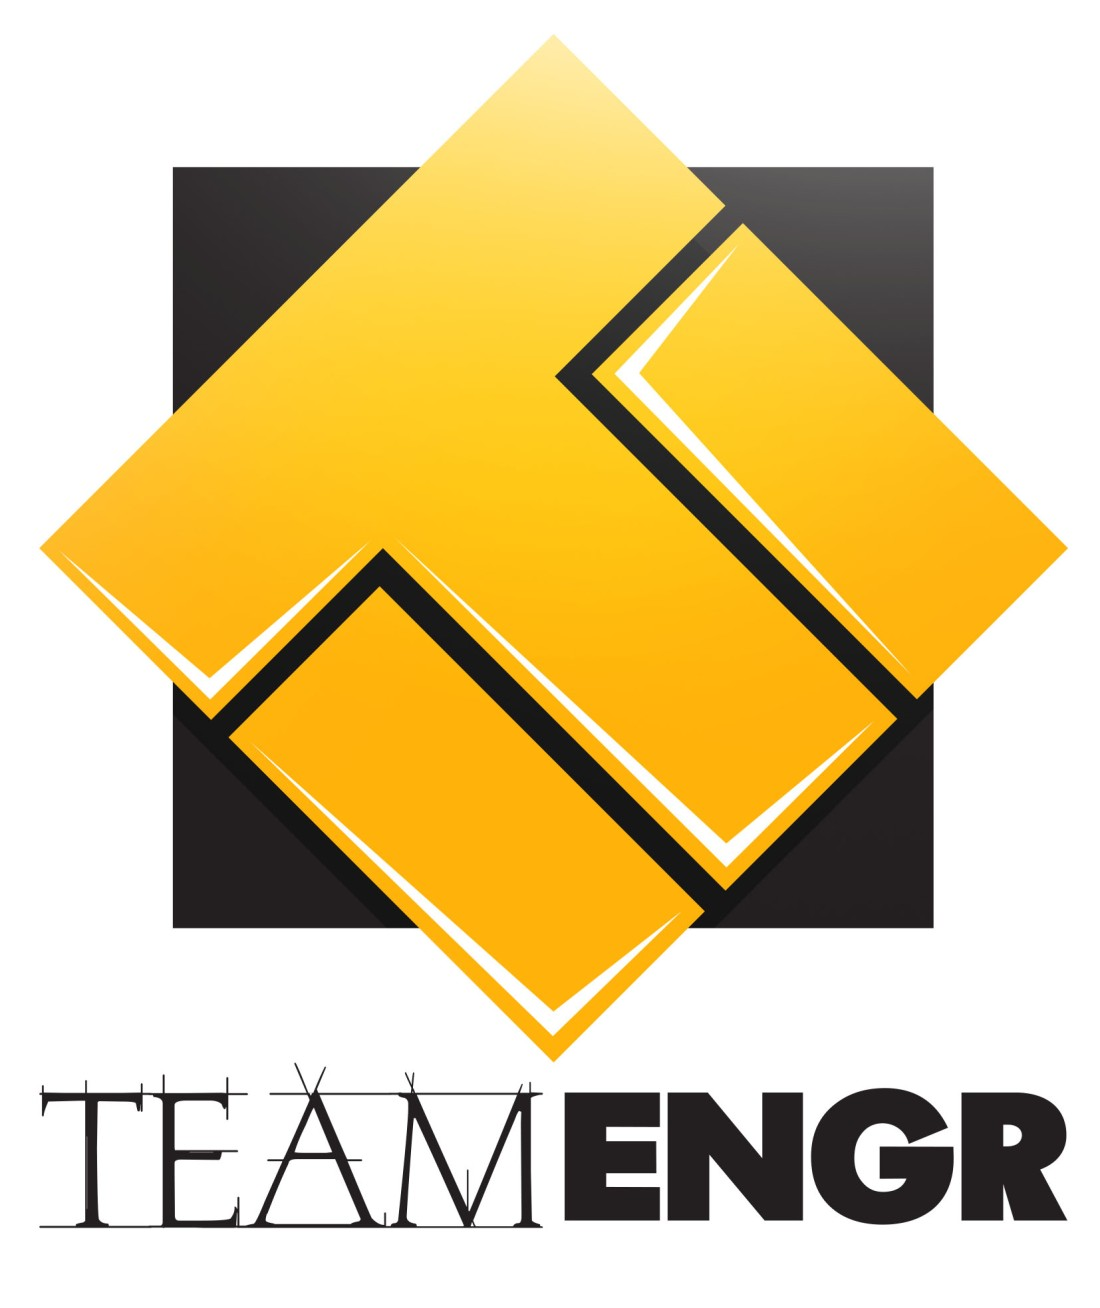 team_engr_logo_large